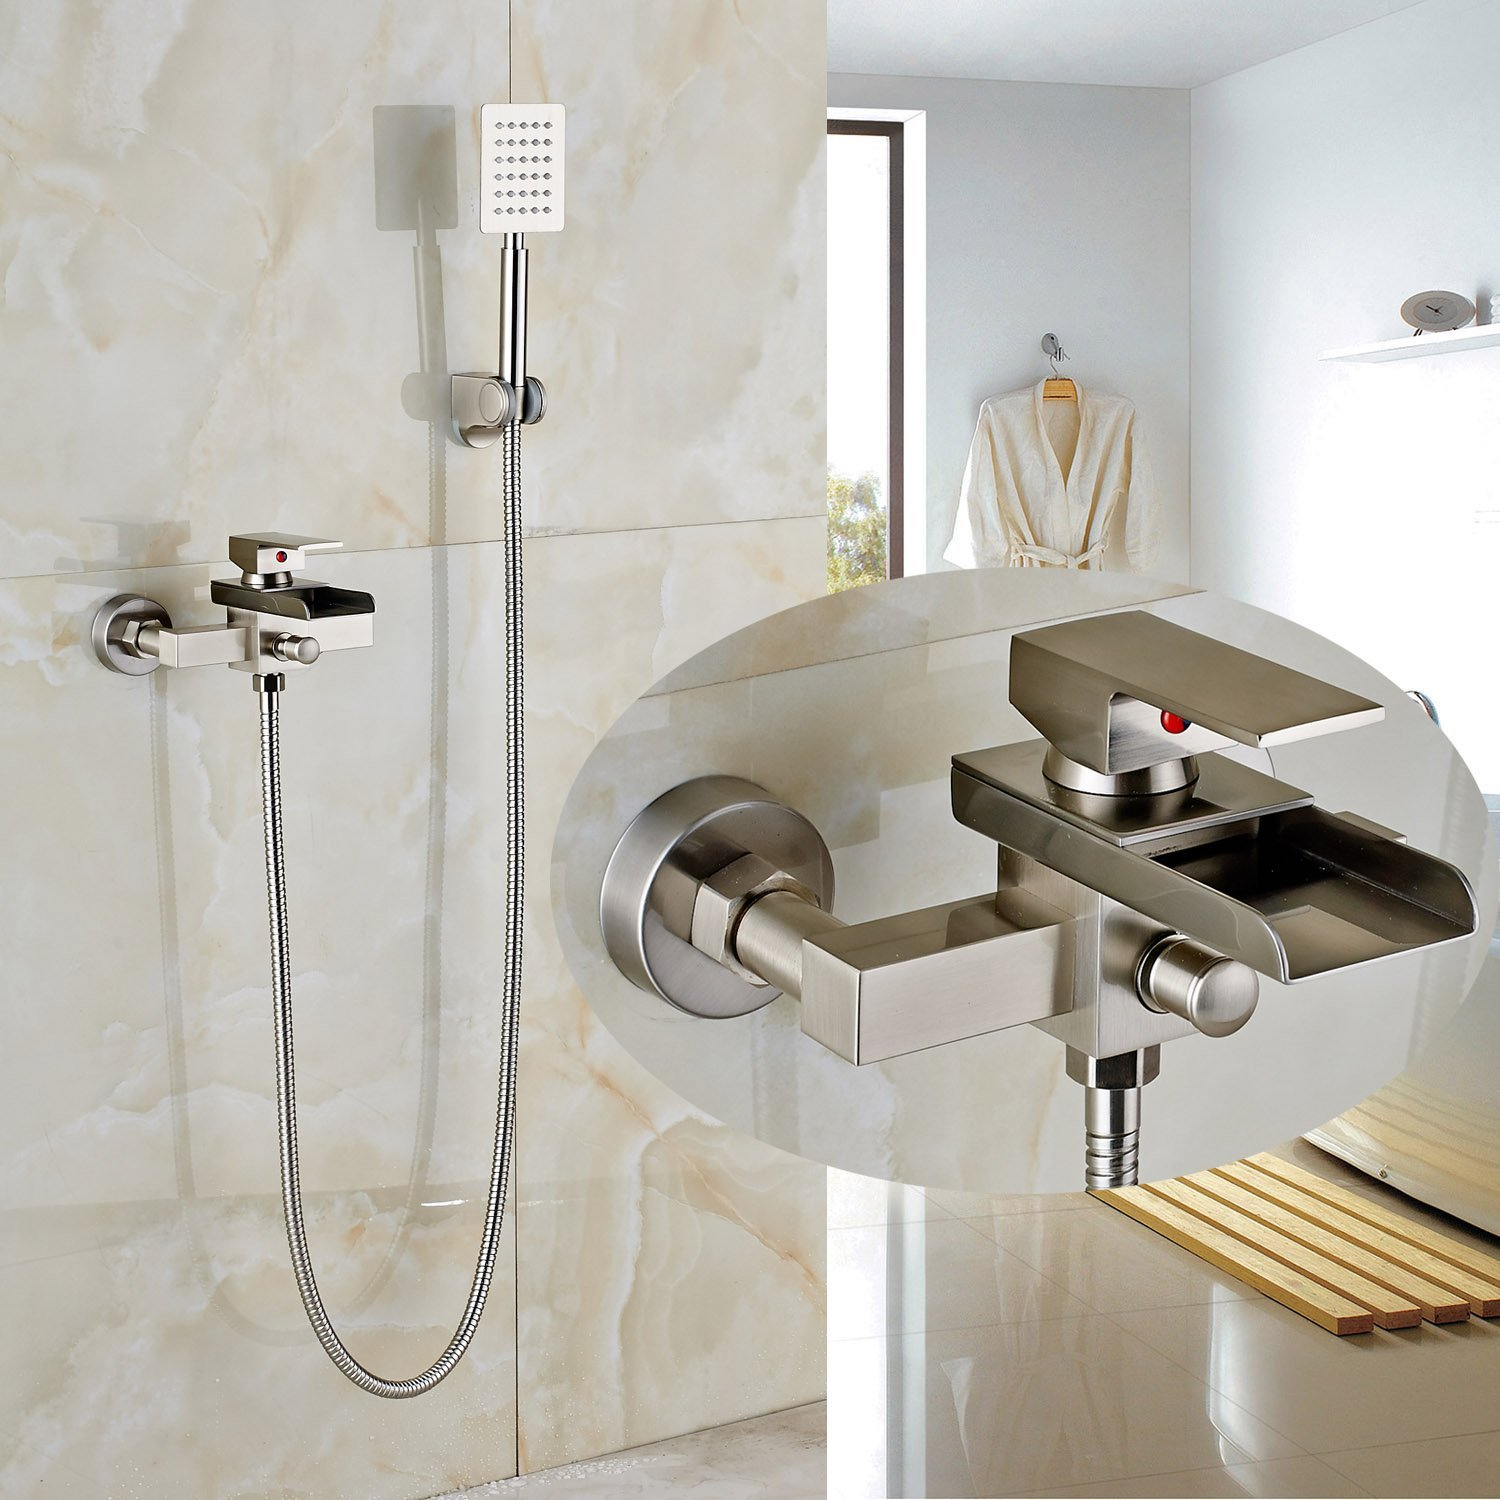 Rozin Wall Mounted Single Handle Bathtub Faucet tap Waterfall Spout with Handheld Shower Set Brushed Nickel